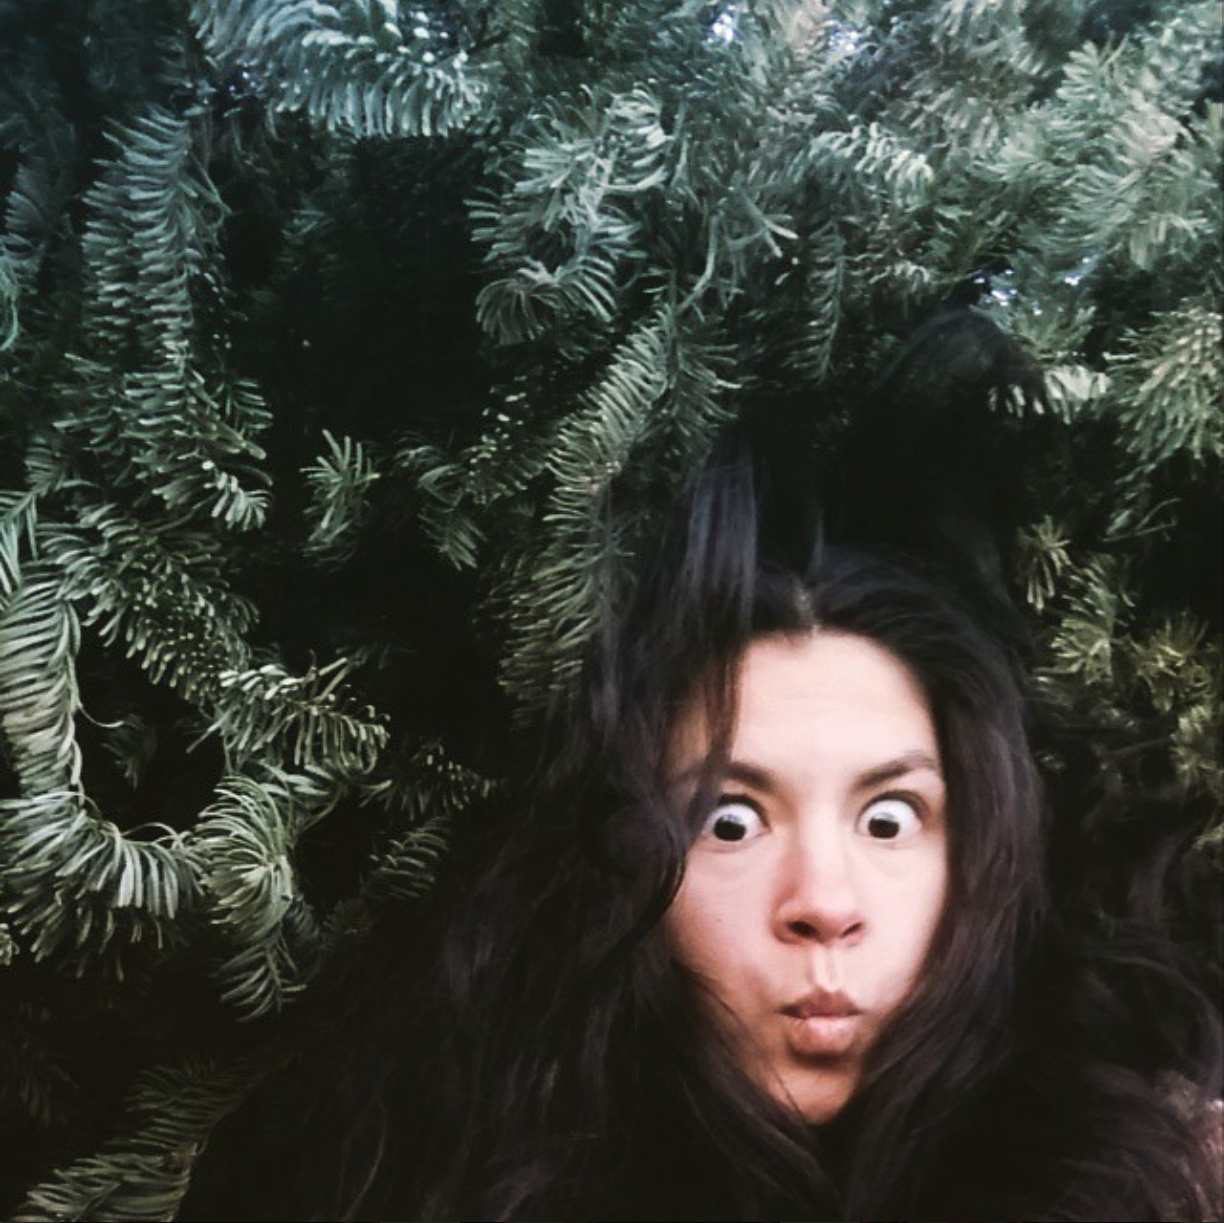 I've been perfecting the art of hiding from the clutches of the Digital Age. In this case, in a cave made of recycled Christmas trees in a snowy park in Nevada.